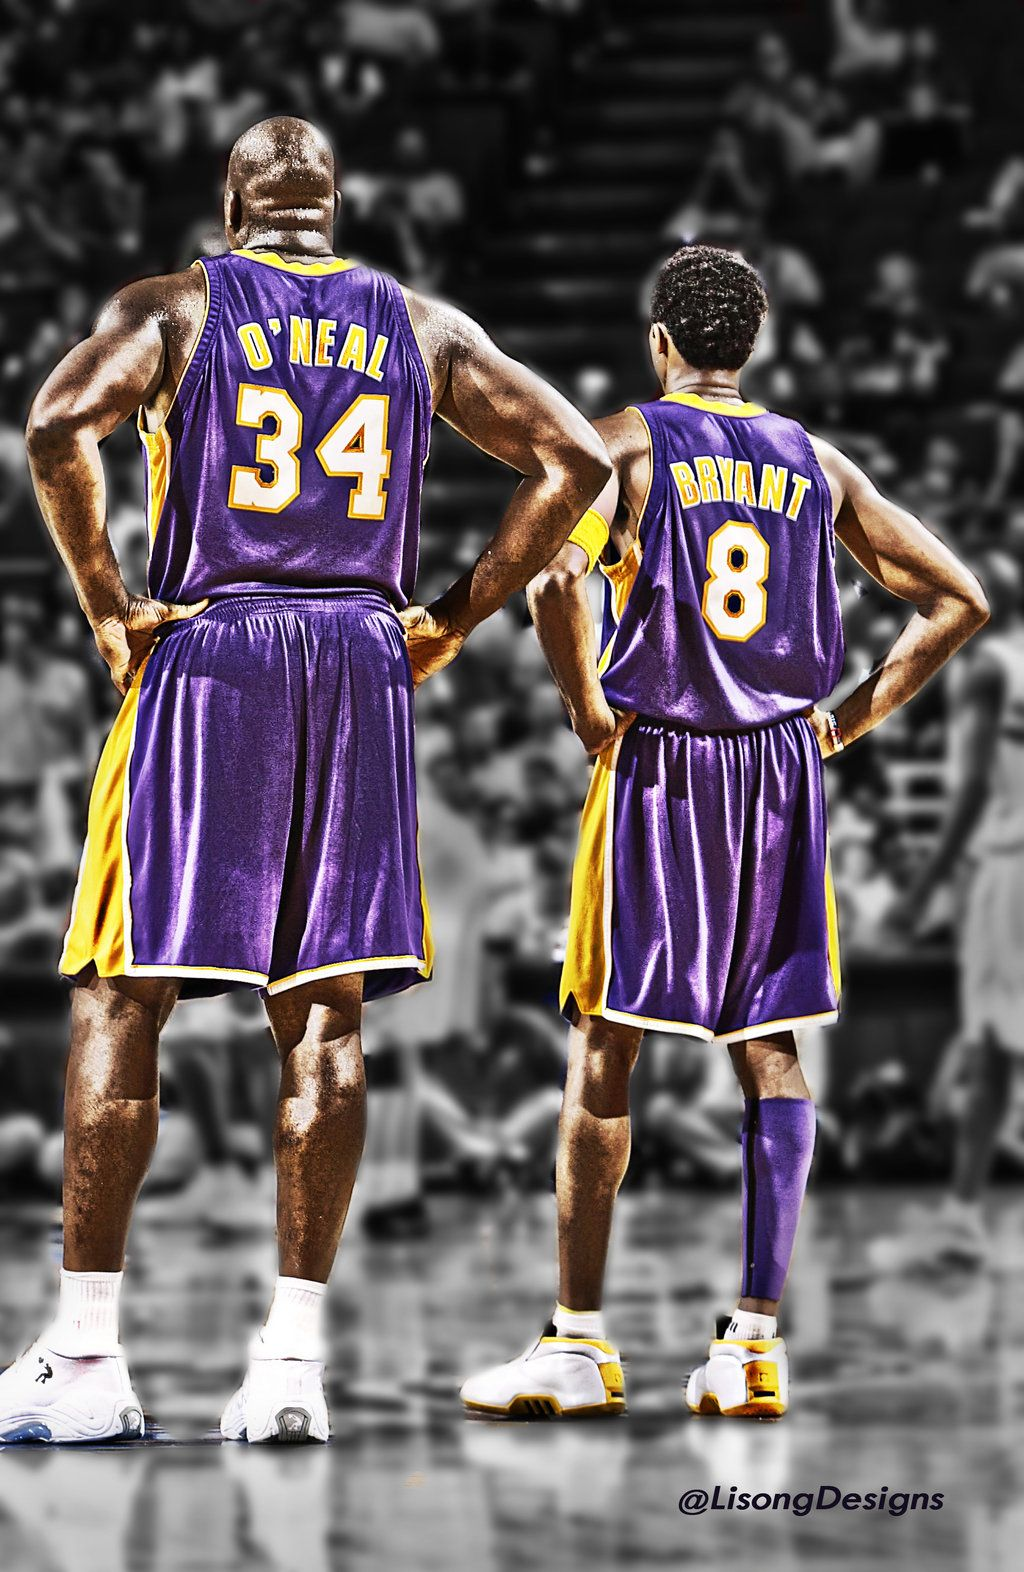 One day the Lakers will rule the league again. Patiently